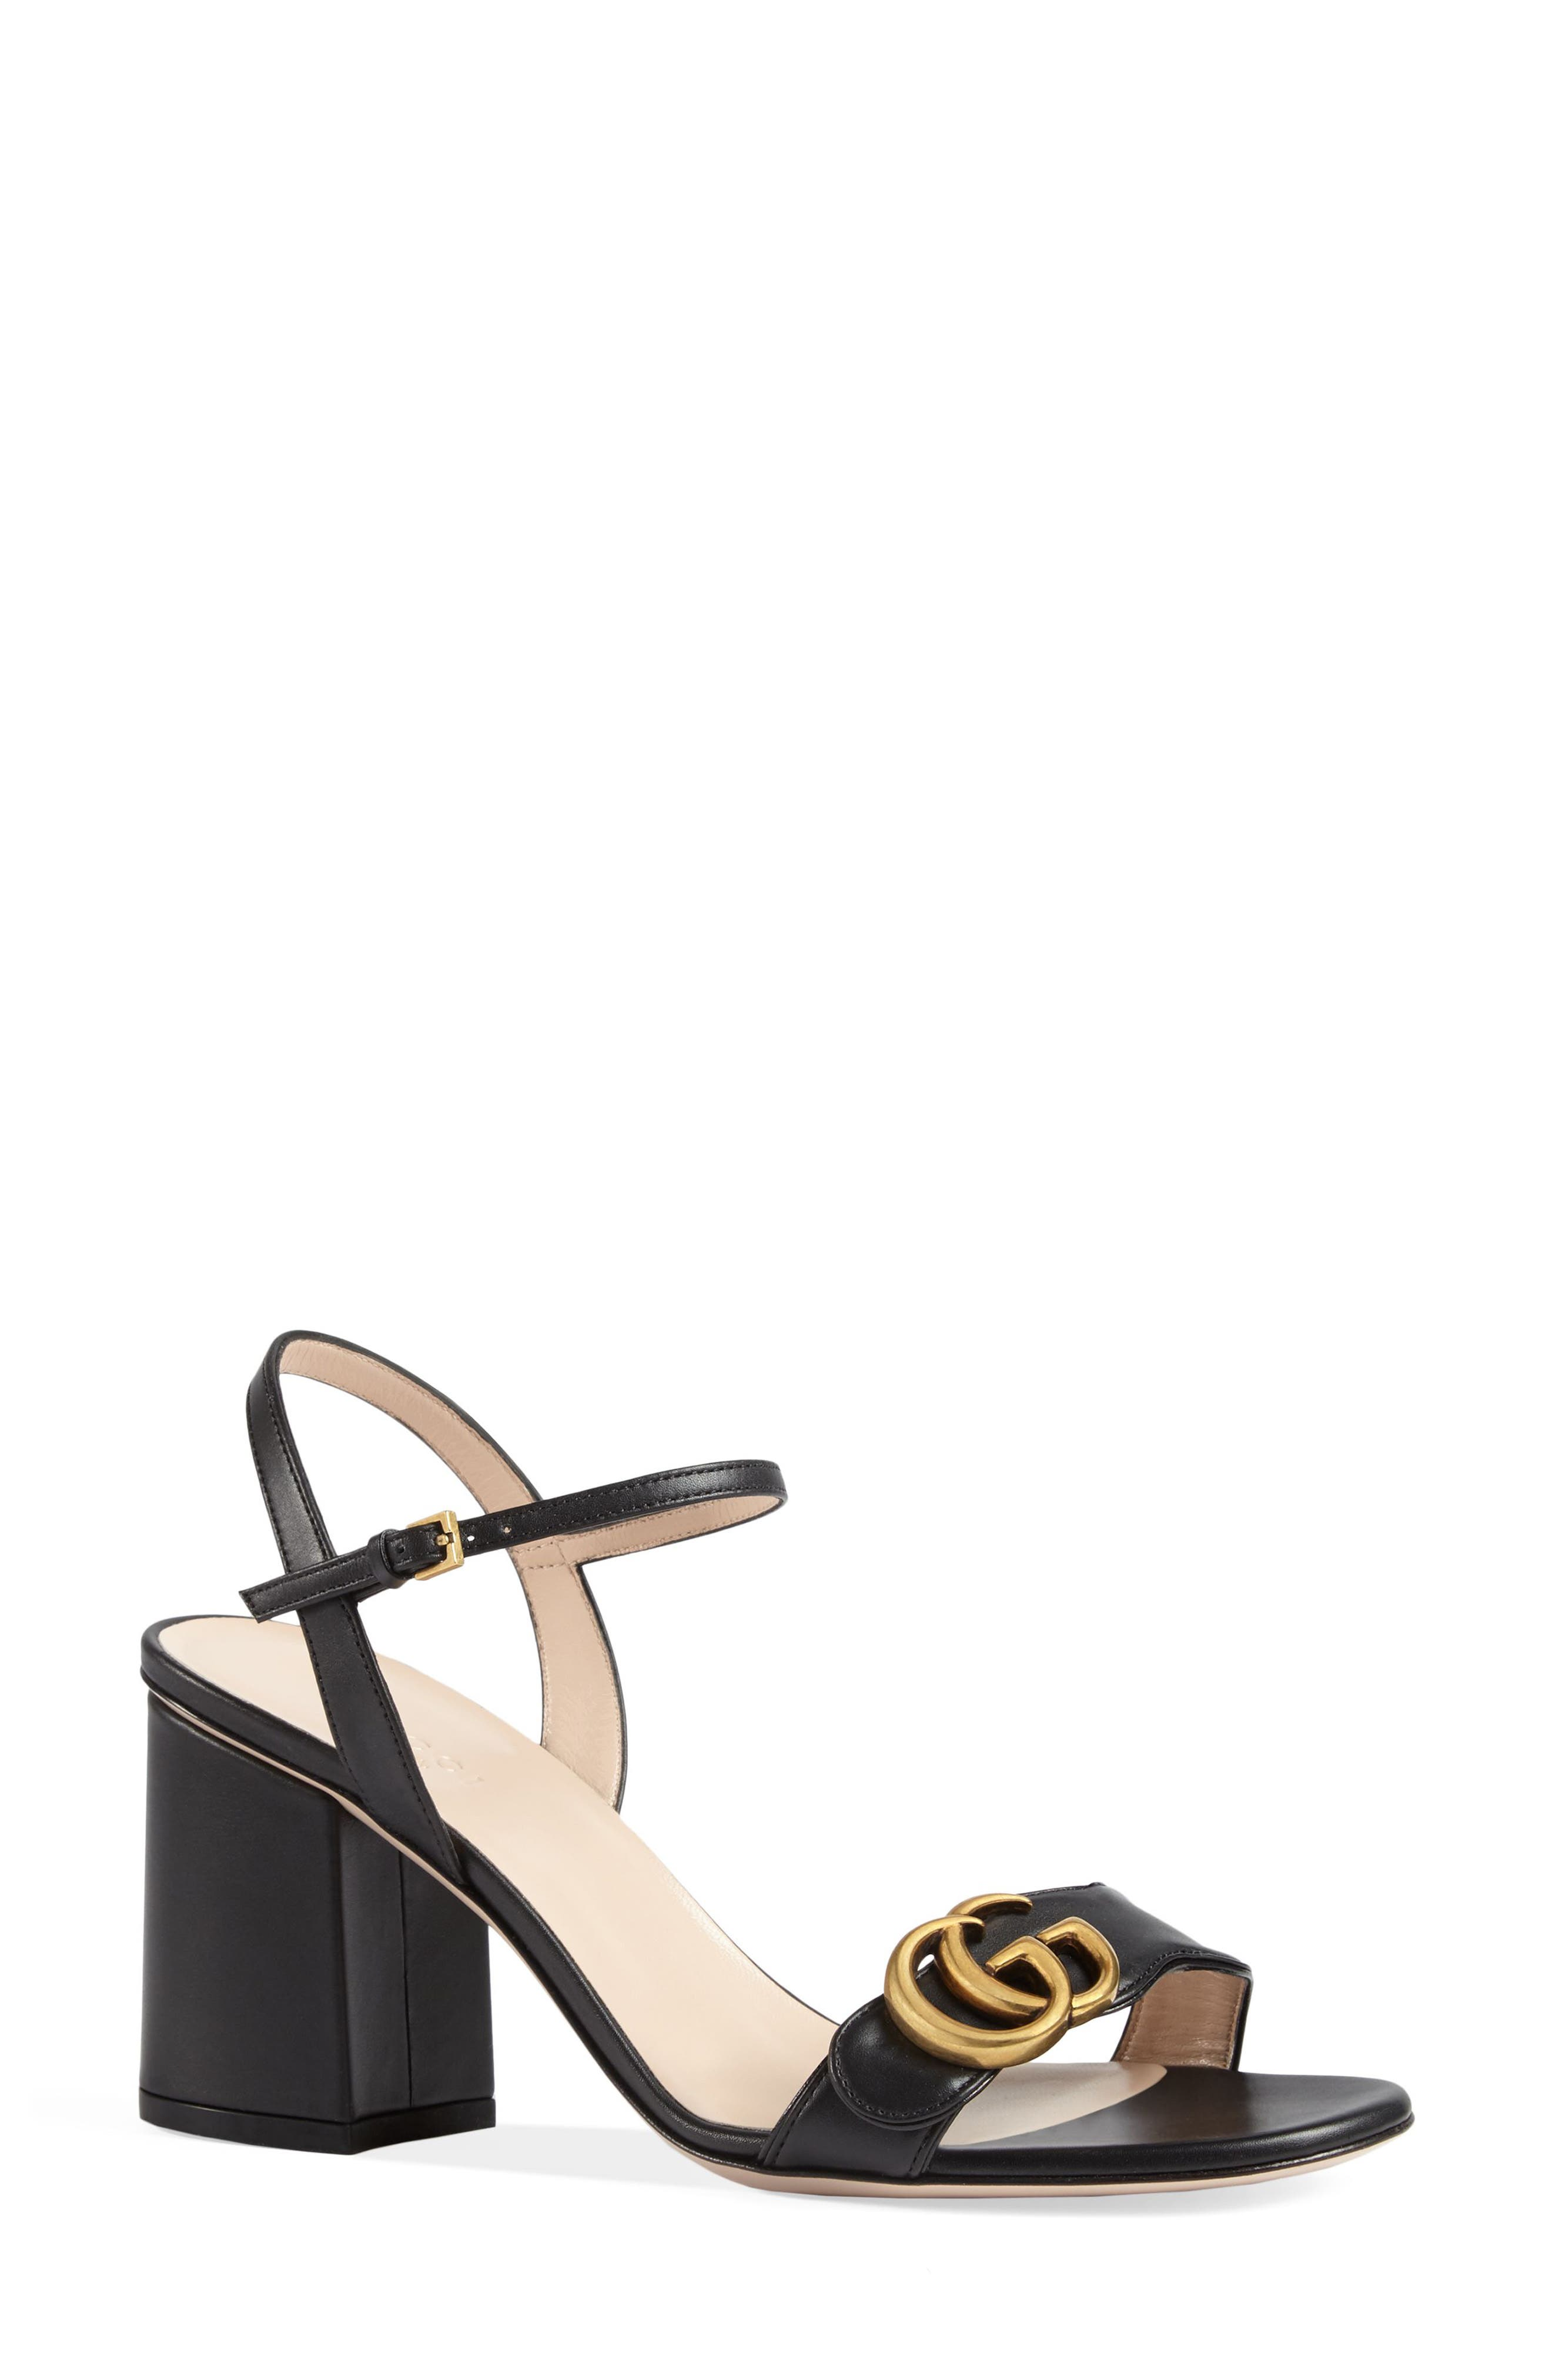 GUCCI, GG Marmont Sandal, Main thumbnail 1, color, BLACK LEATHER